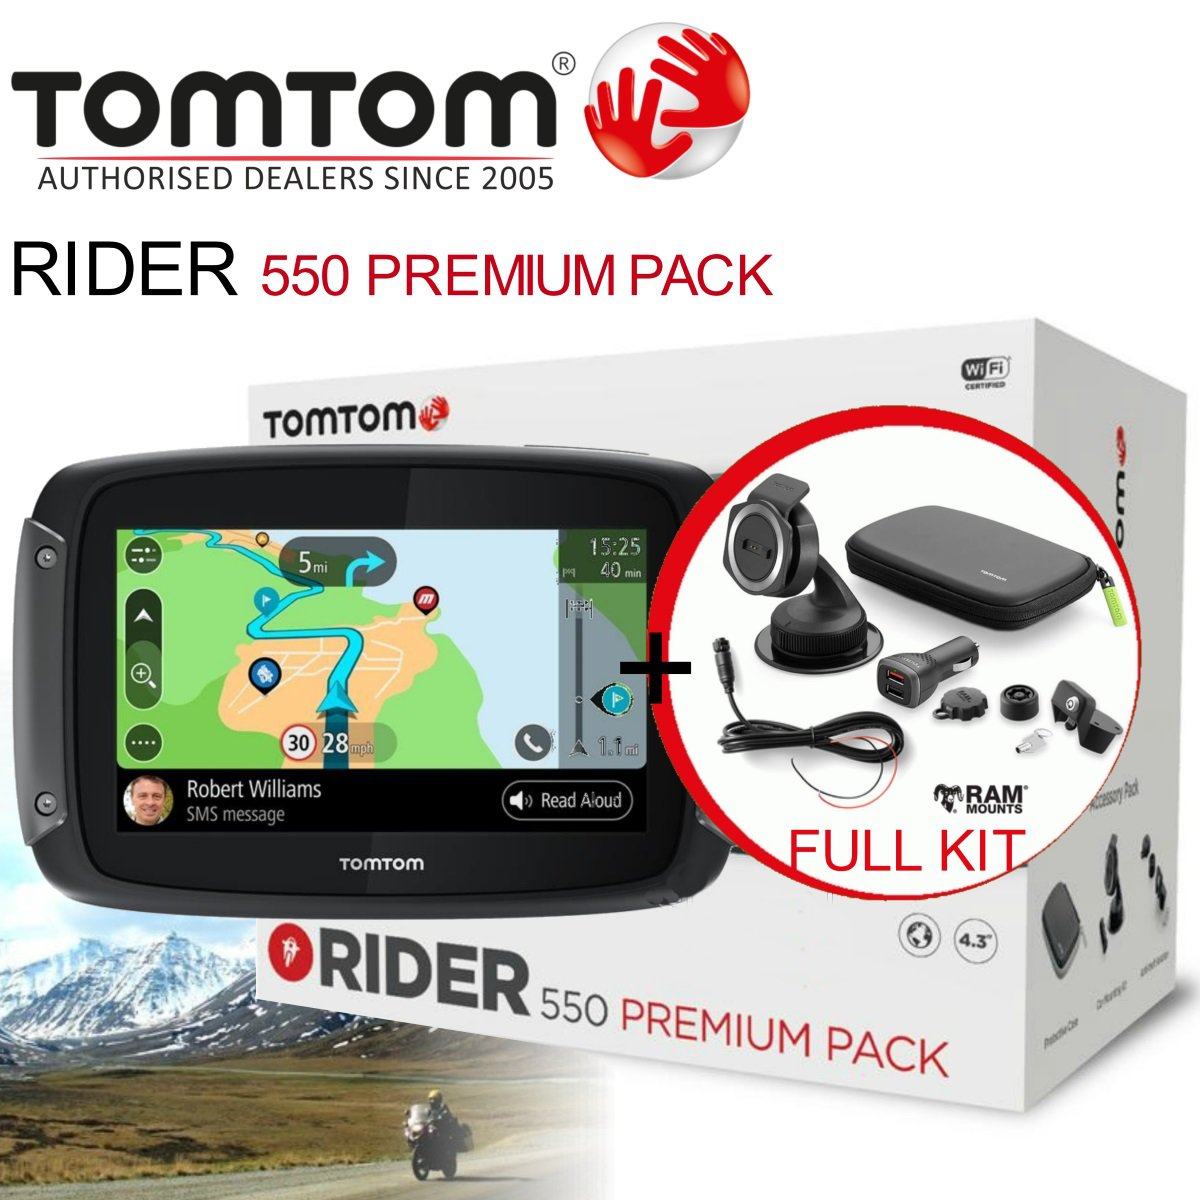 tomtom gps navigace rider 550 premium pack. Black Bedroom Furniture Sets. Home Design Ideas